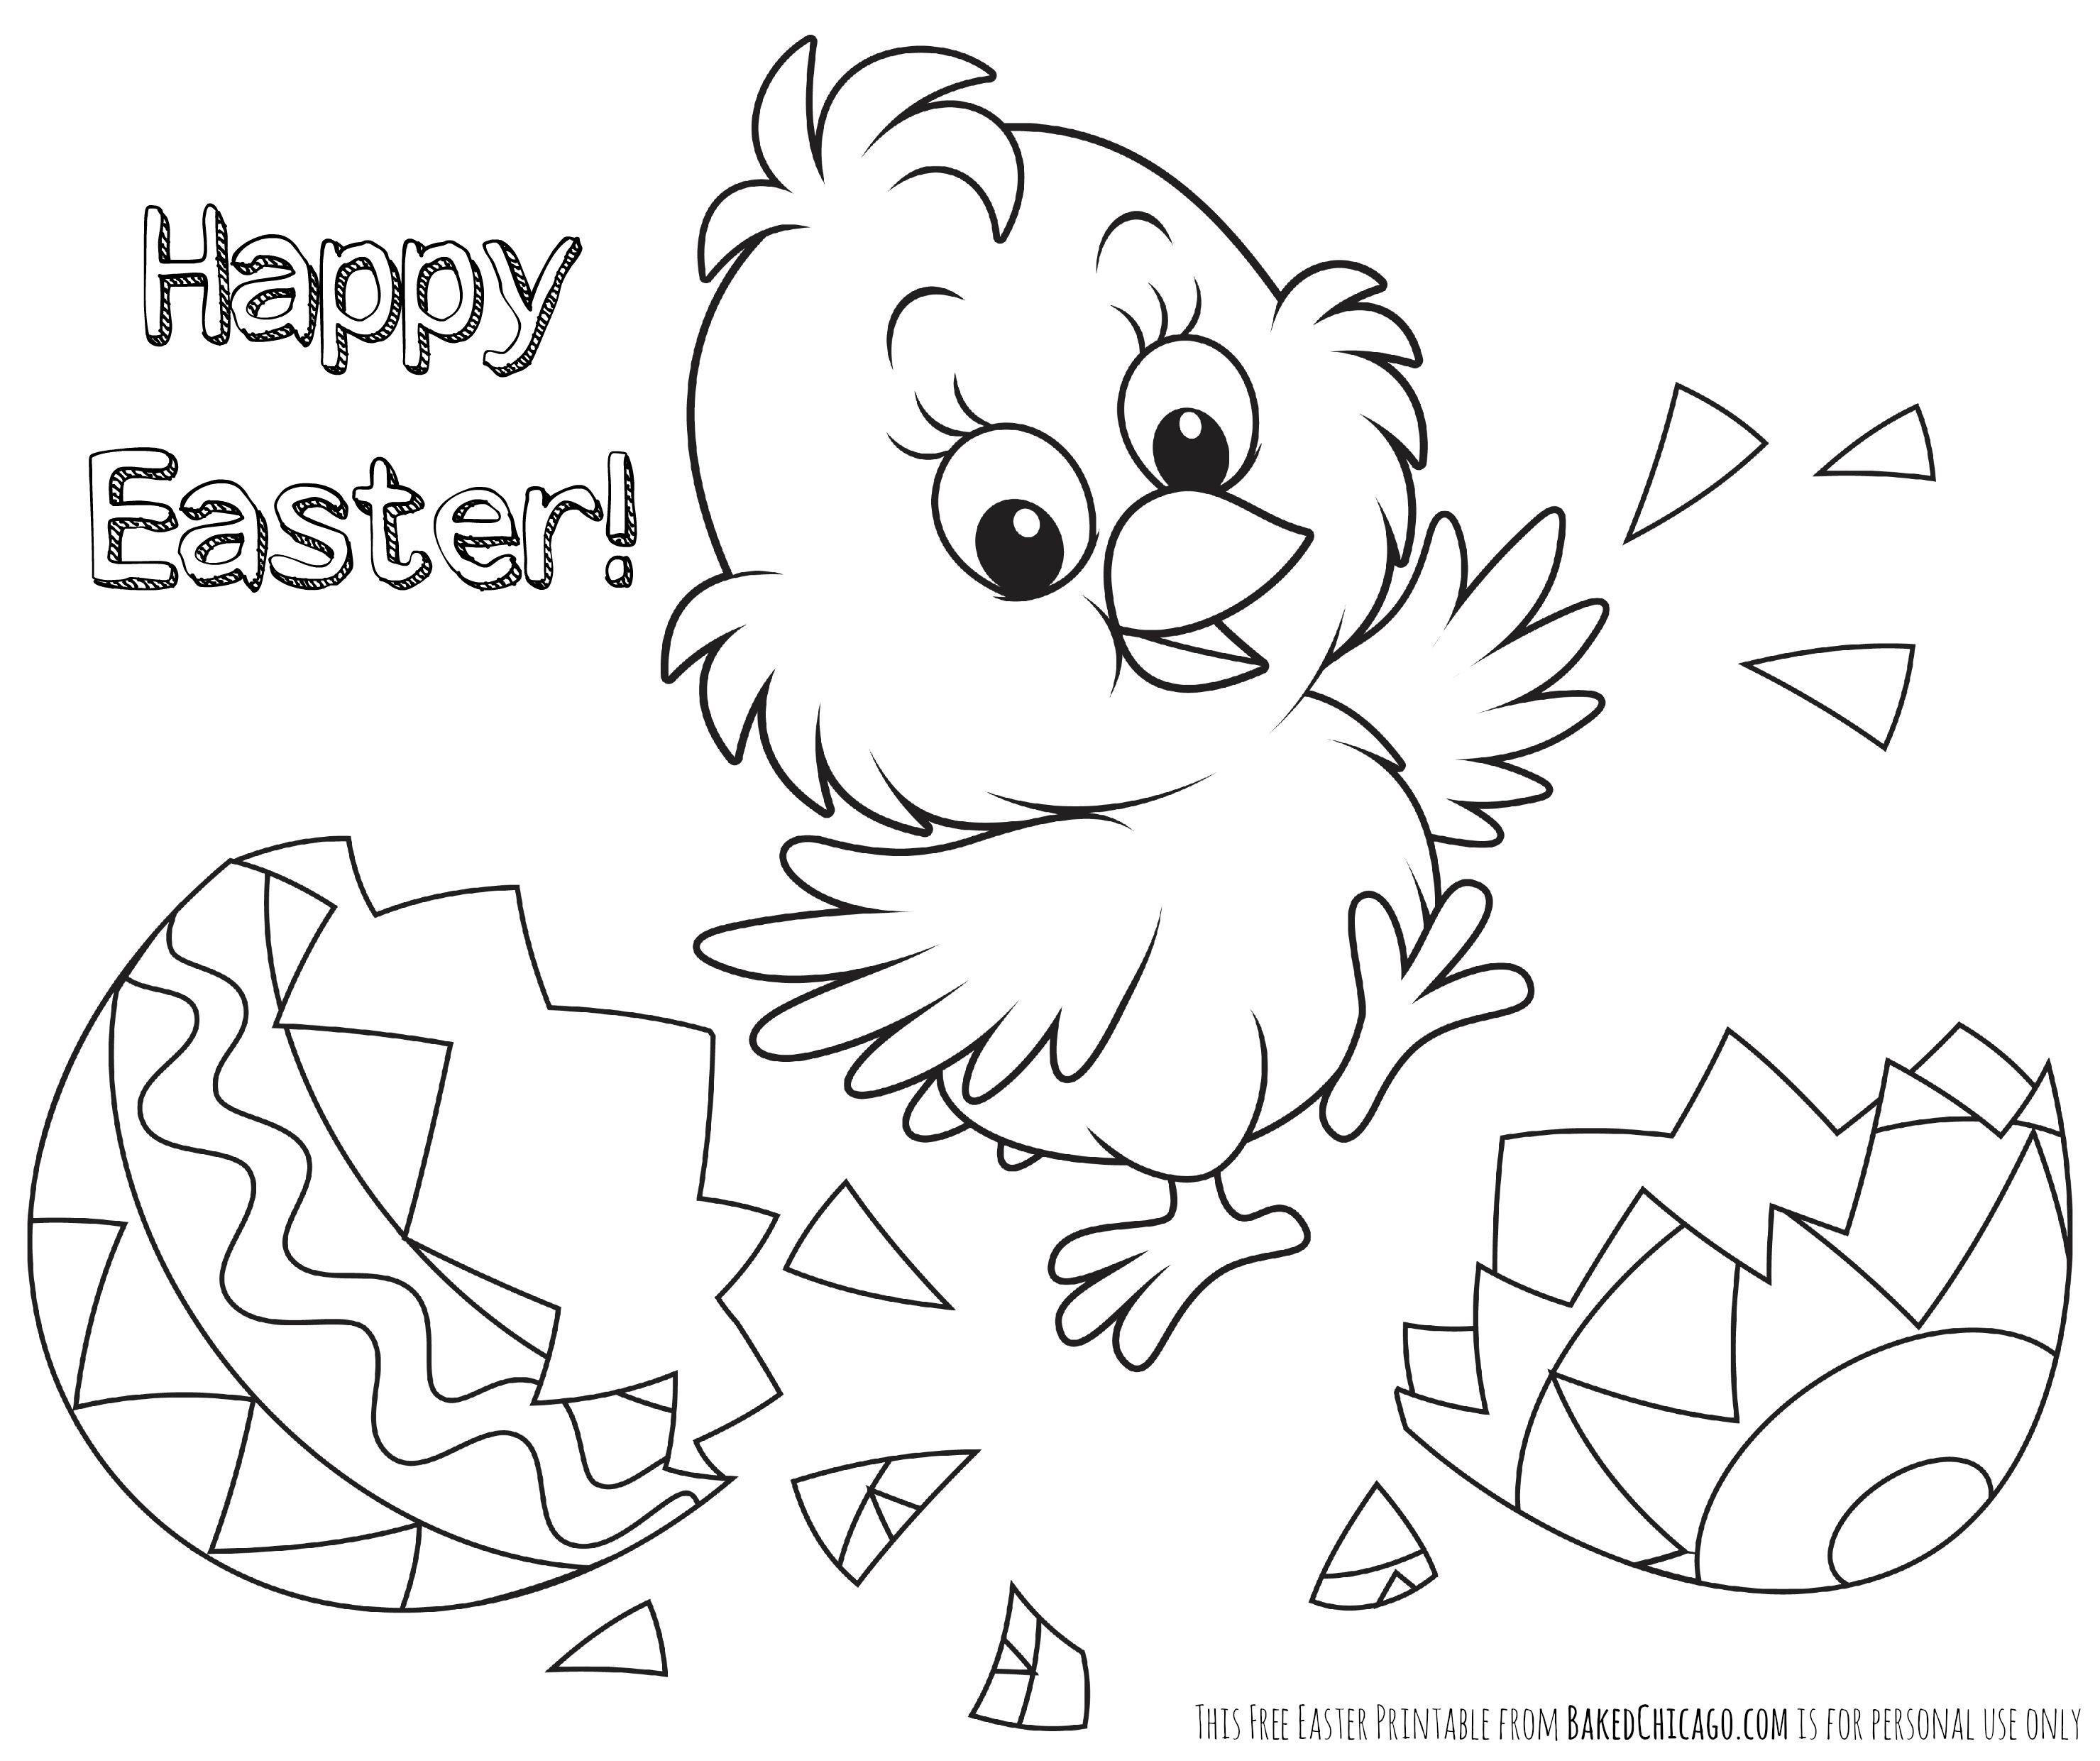 12 Free Printable Easter Coloring Pages   Topsailmultimedia - Easter Color Pages Free Printable